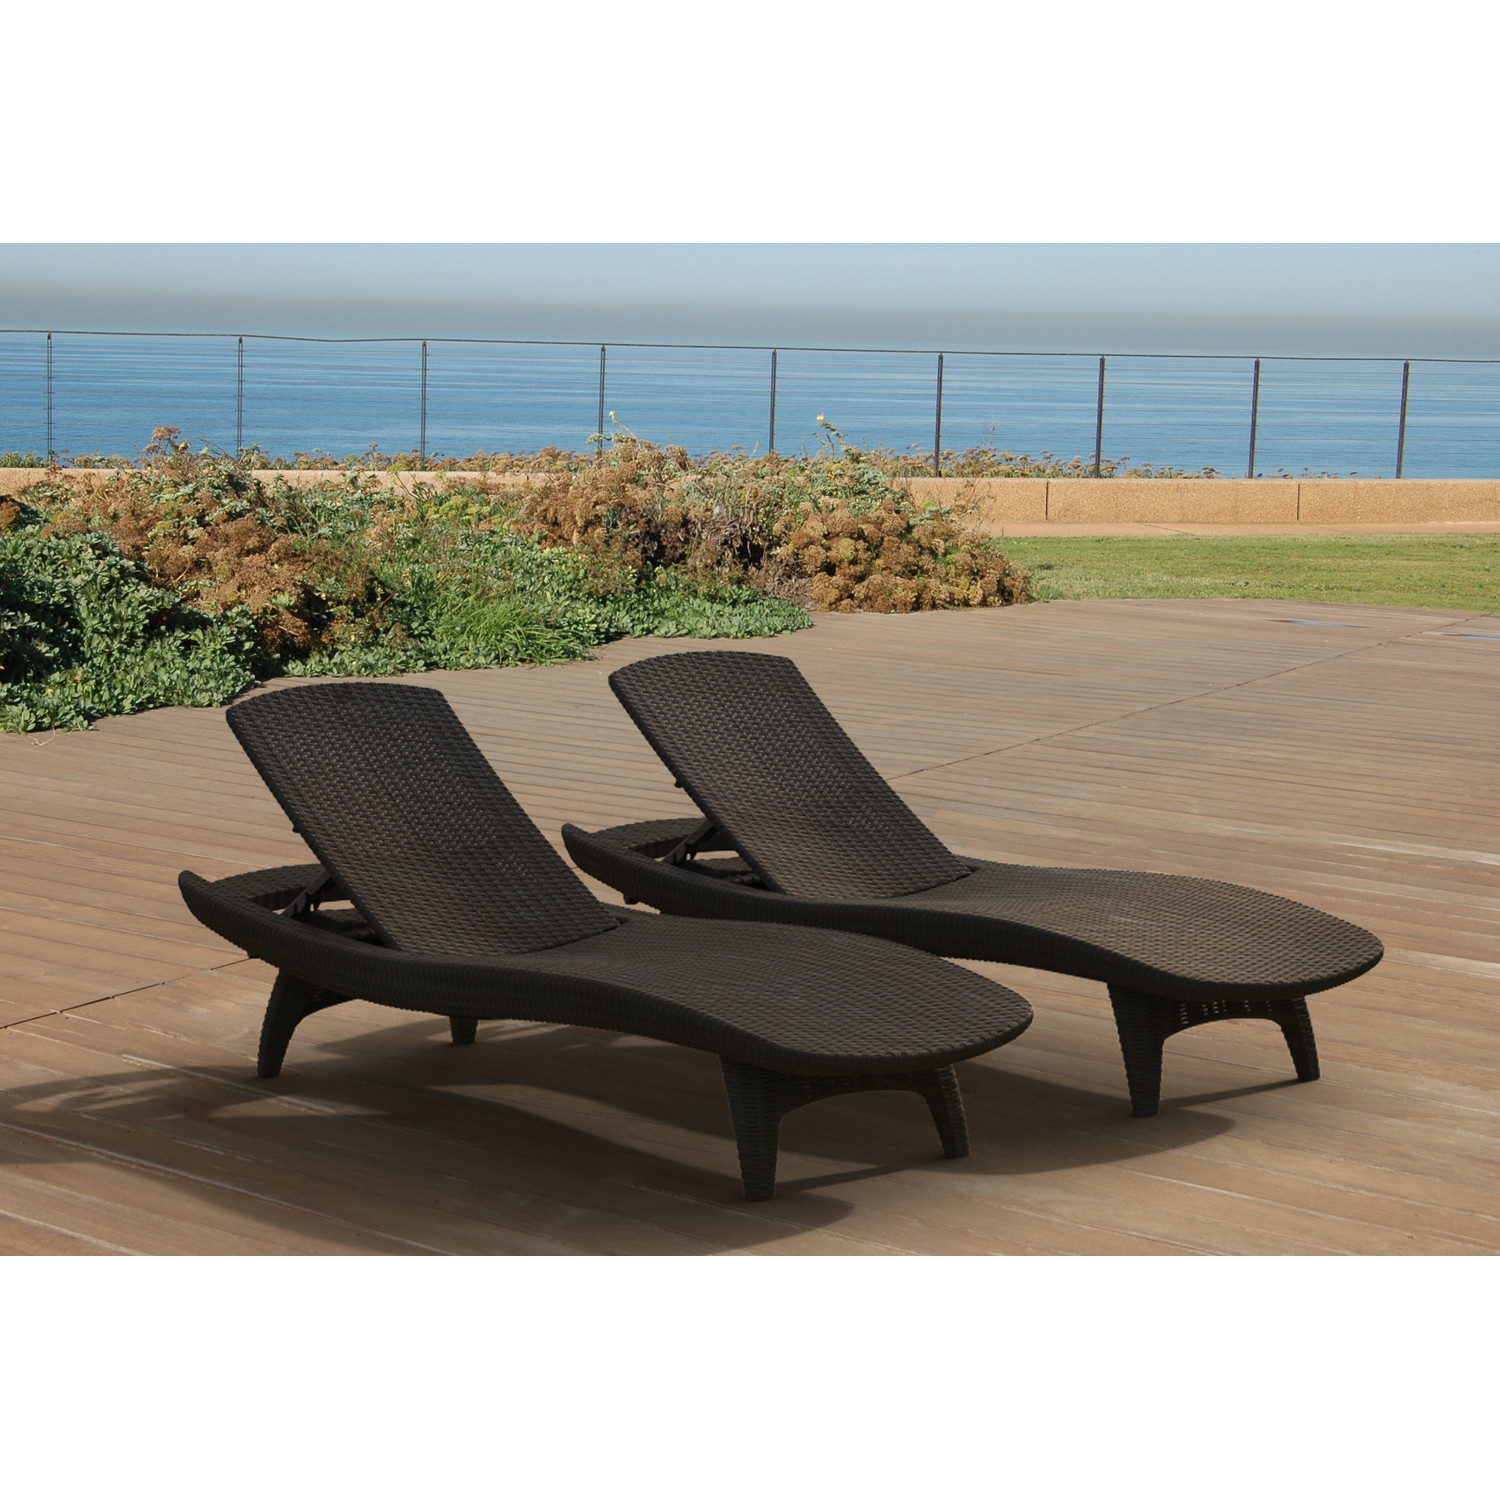 Image of: Folding Chaise Lounge Chair Image